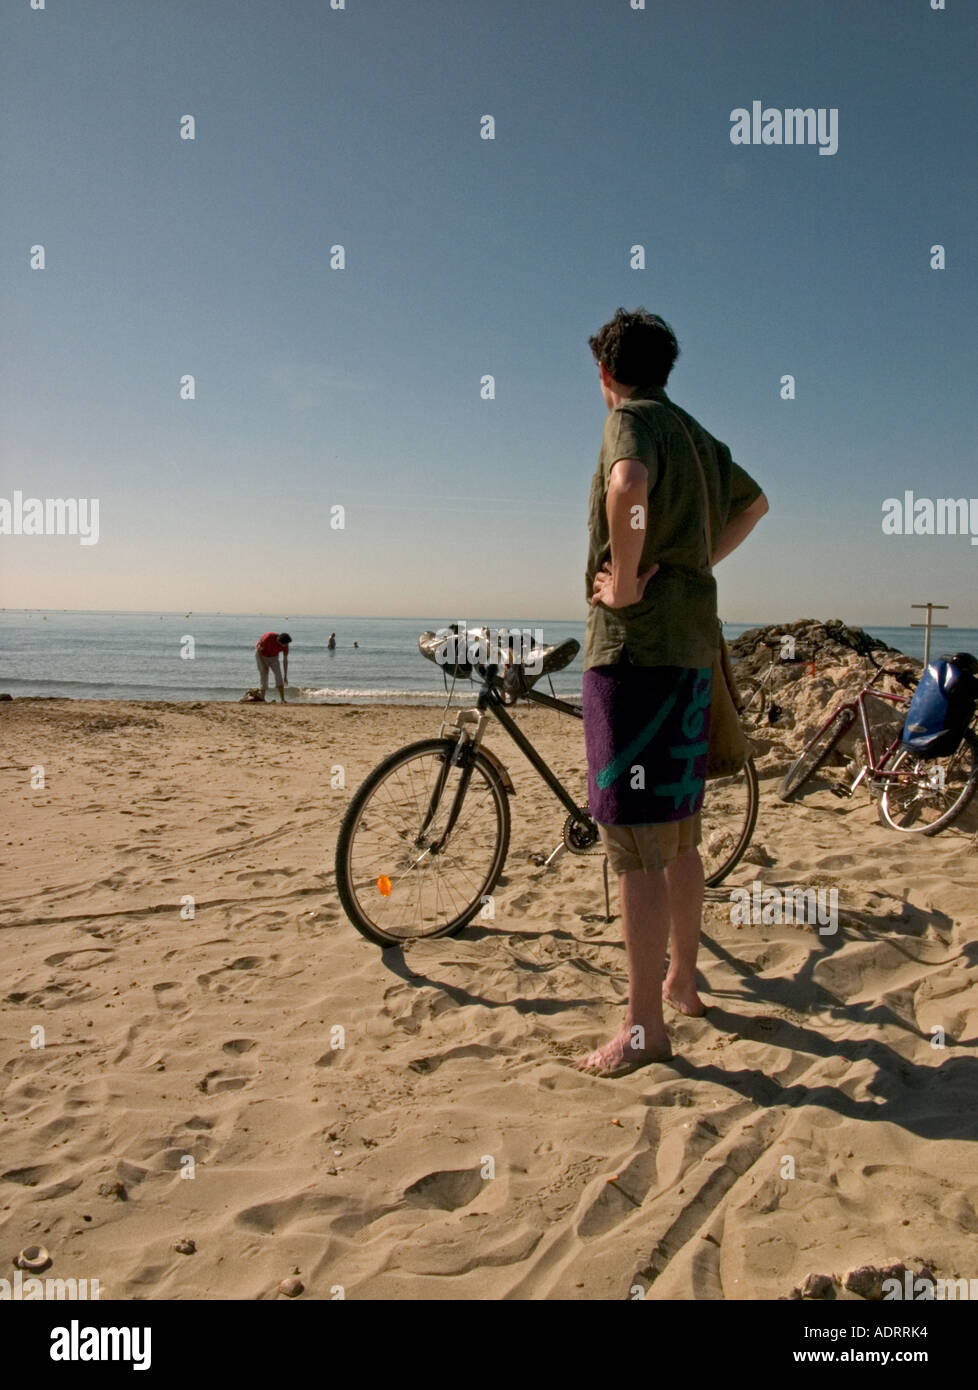 a young man waits by his bike on a beach with hands on hips - Stock Image